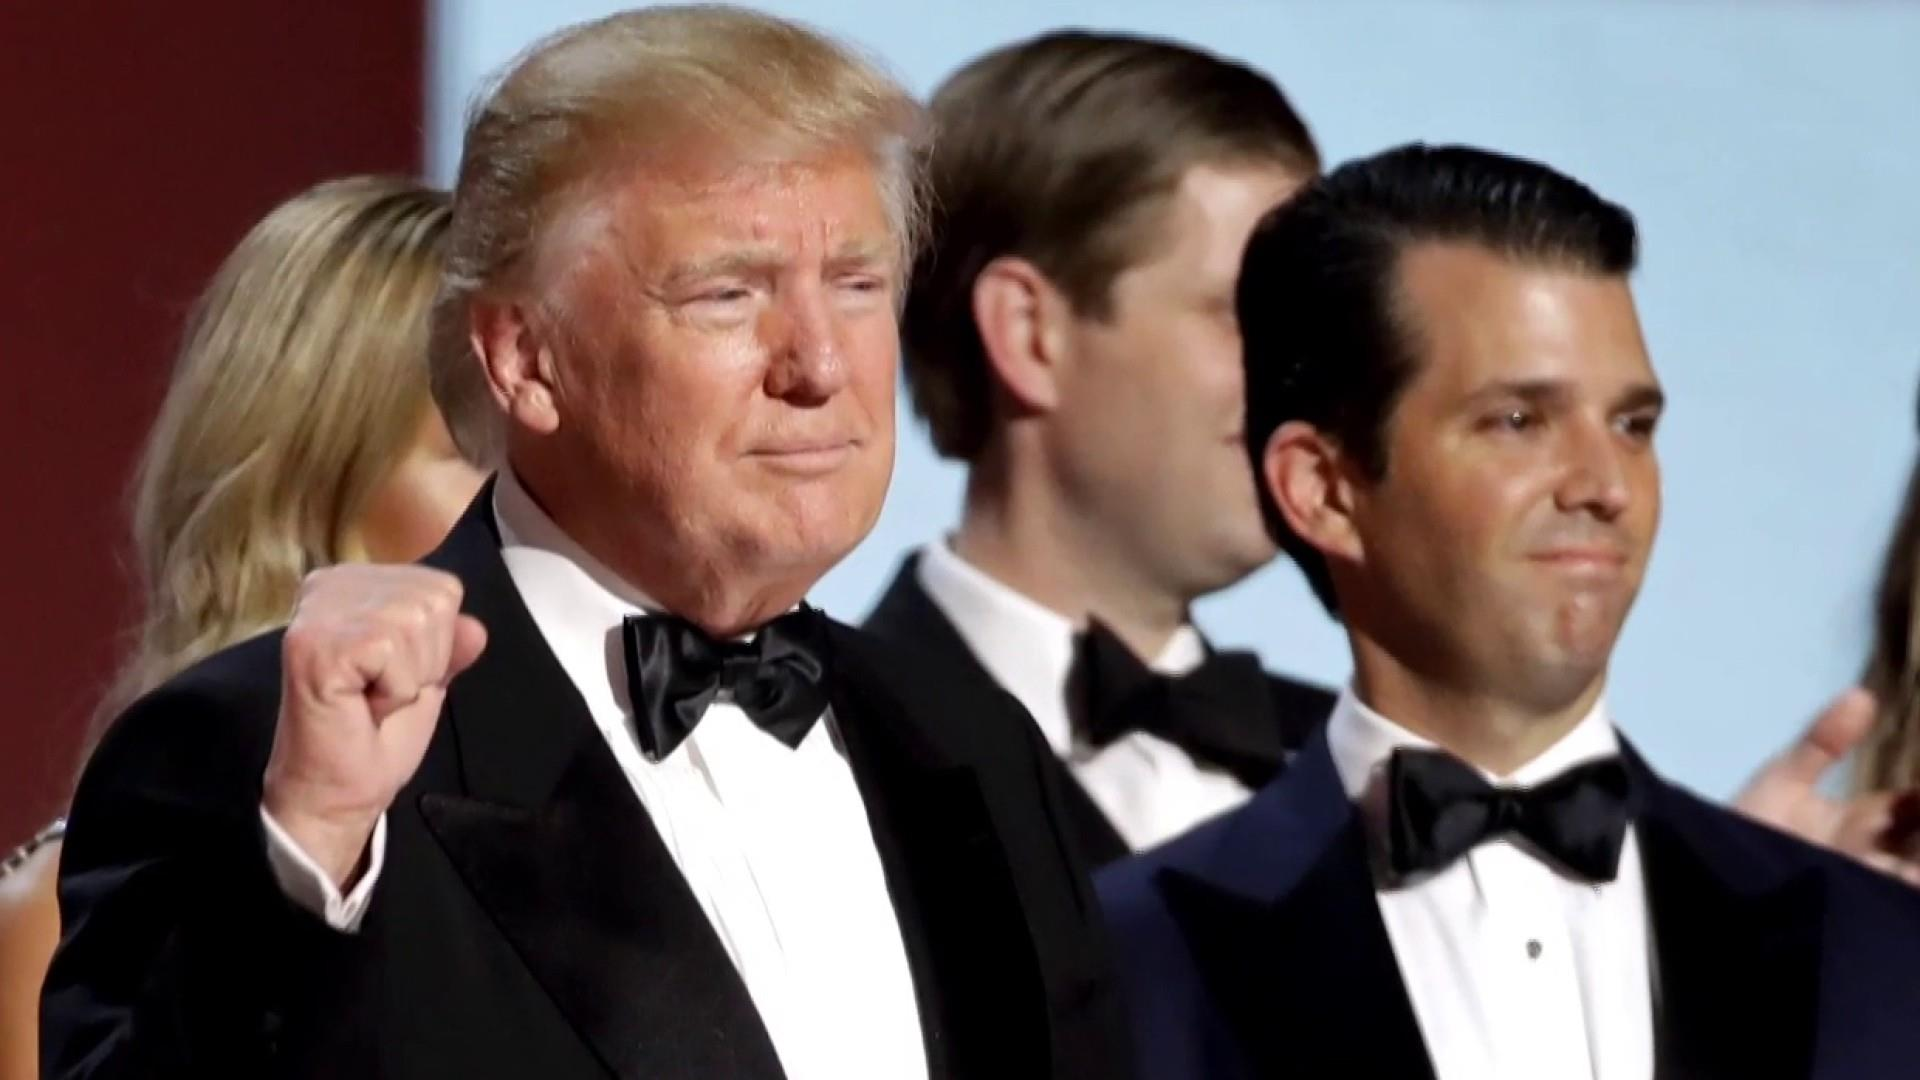 Legal nightmare: Trump bracing for NY Feds